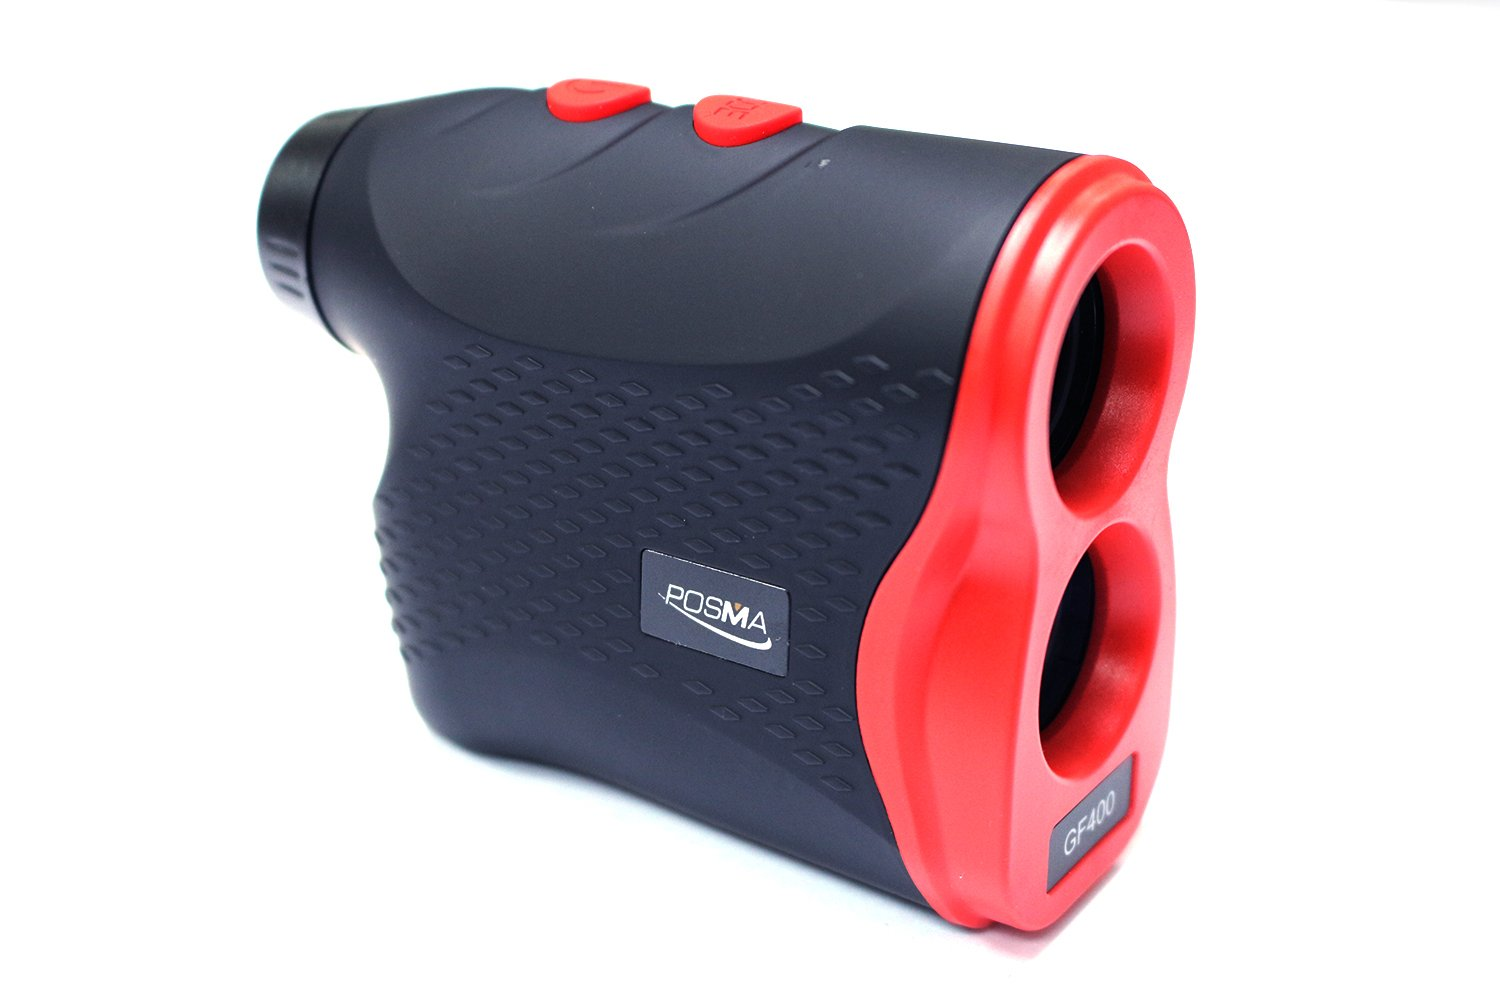 Entfernungsmesser Tacklife Mlr01 : Posma gf golf entfernungsmesser laser scope